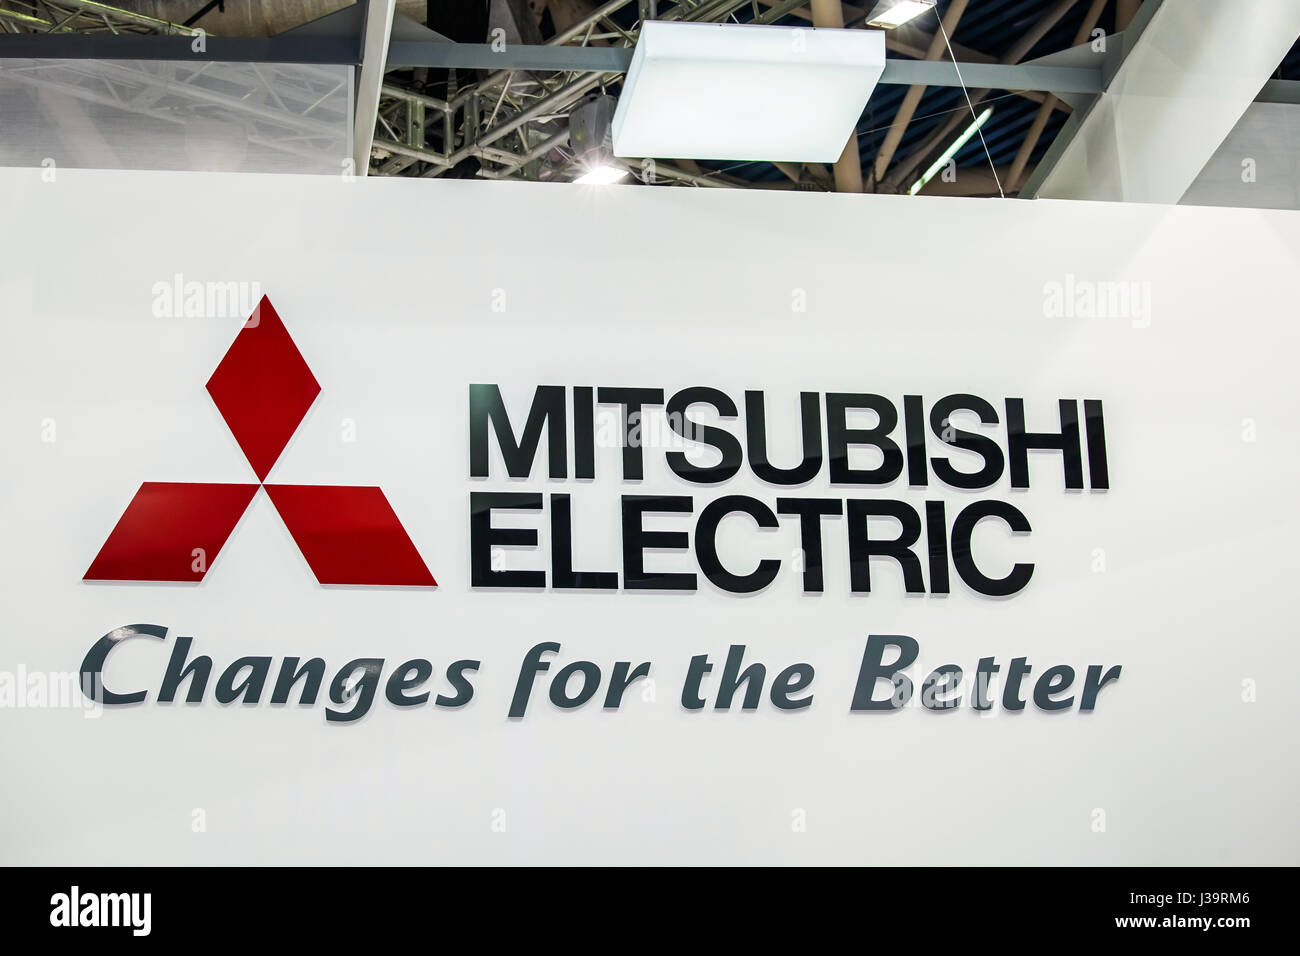 Mitsubishi Electric Company Logo On The Wall Group Japanese Multinational Companies In A Variety Of Industries